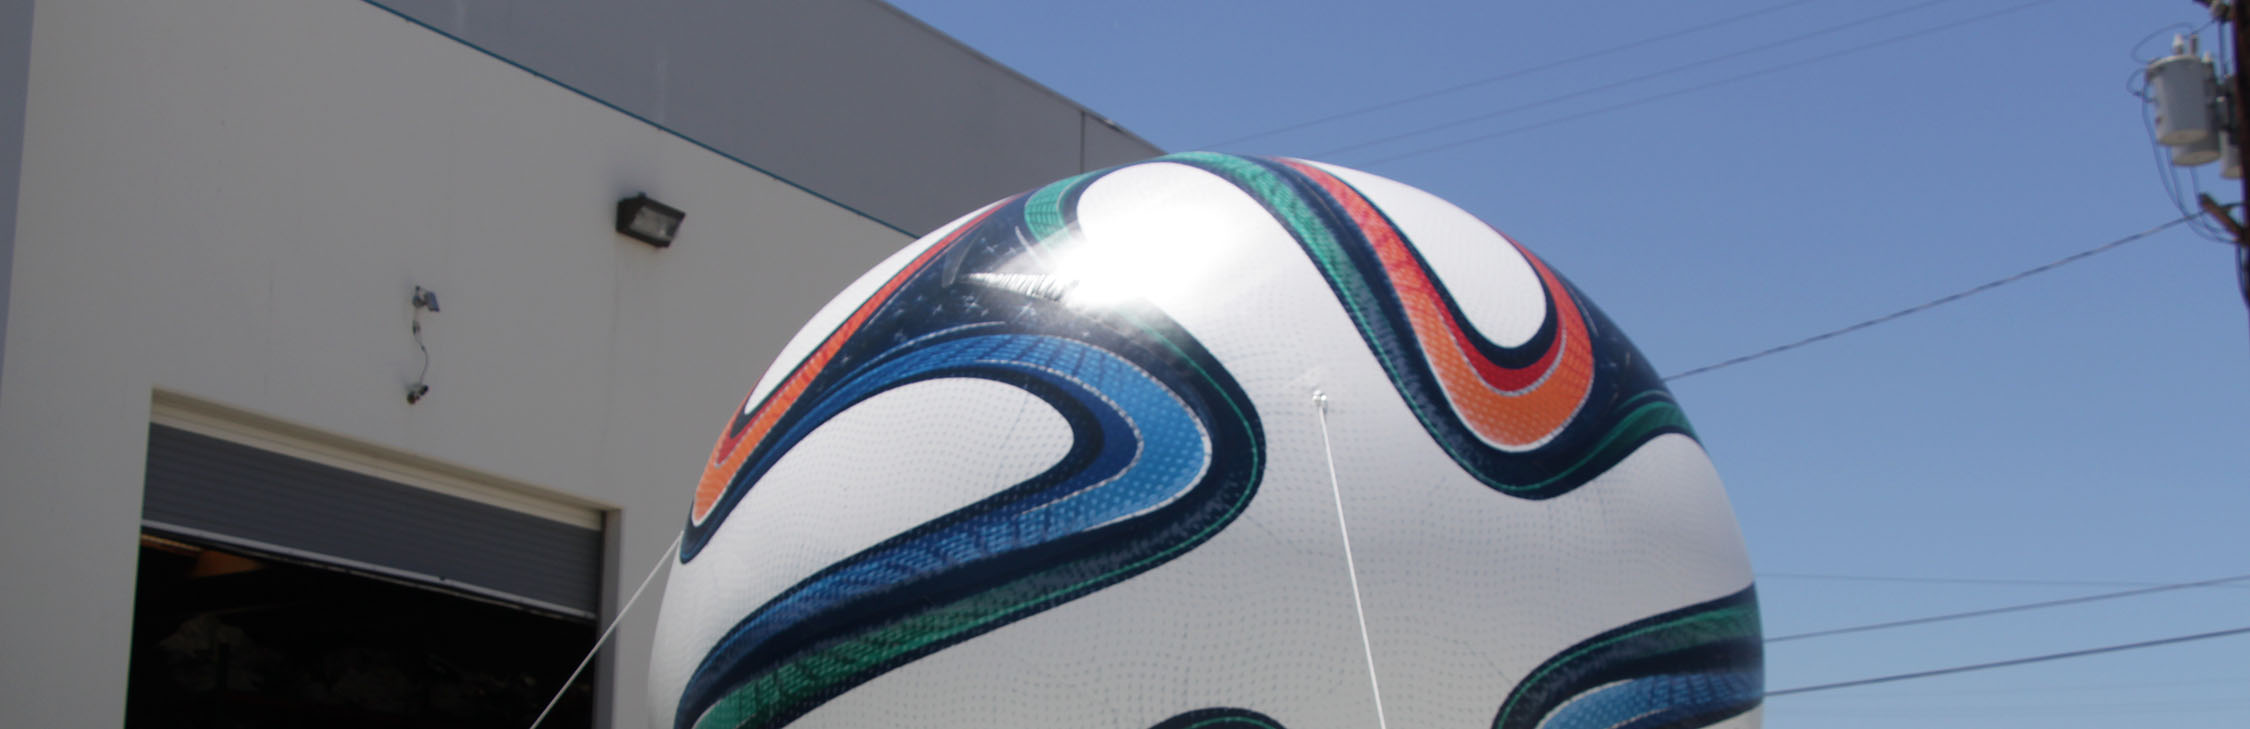 inflatable-soccer-ball-sky-cropped.jpg